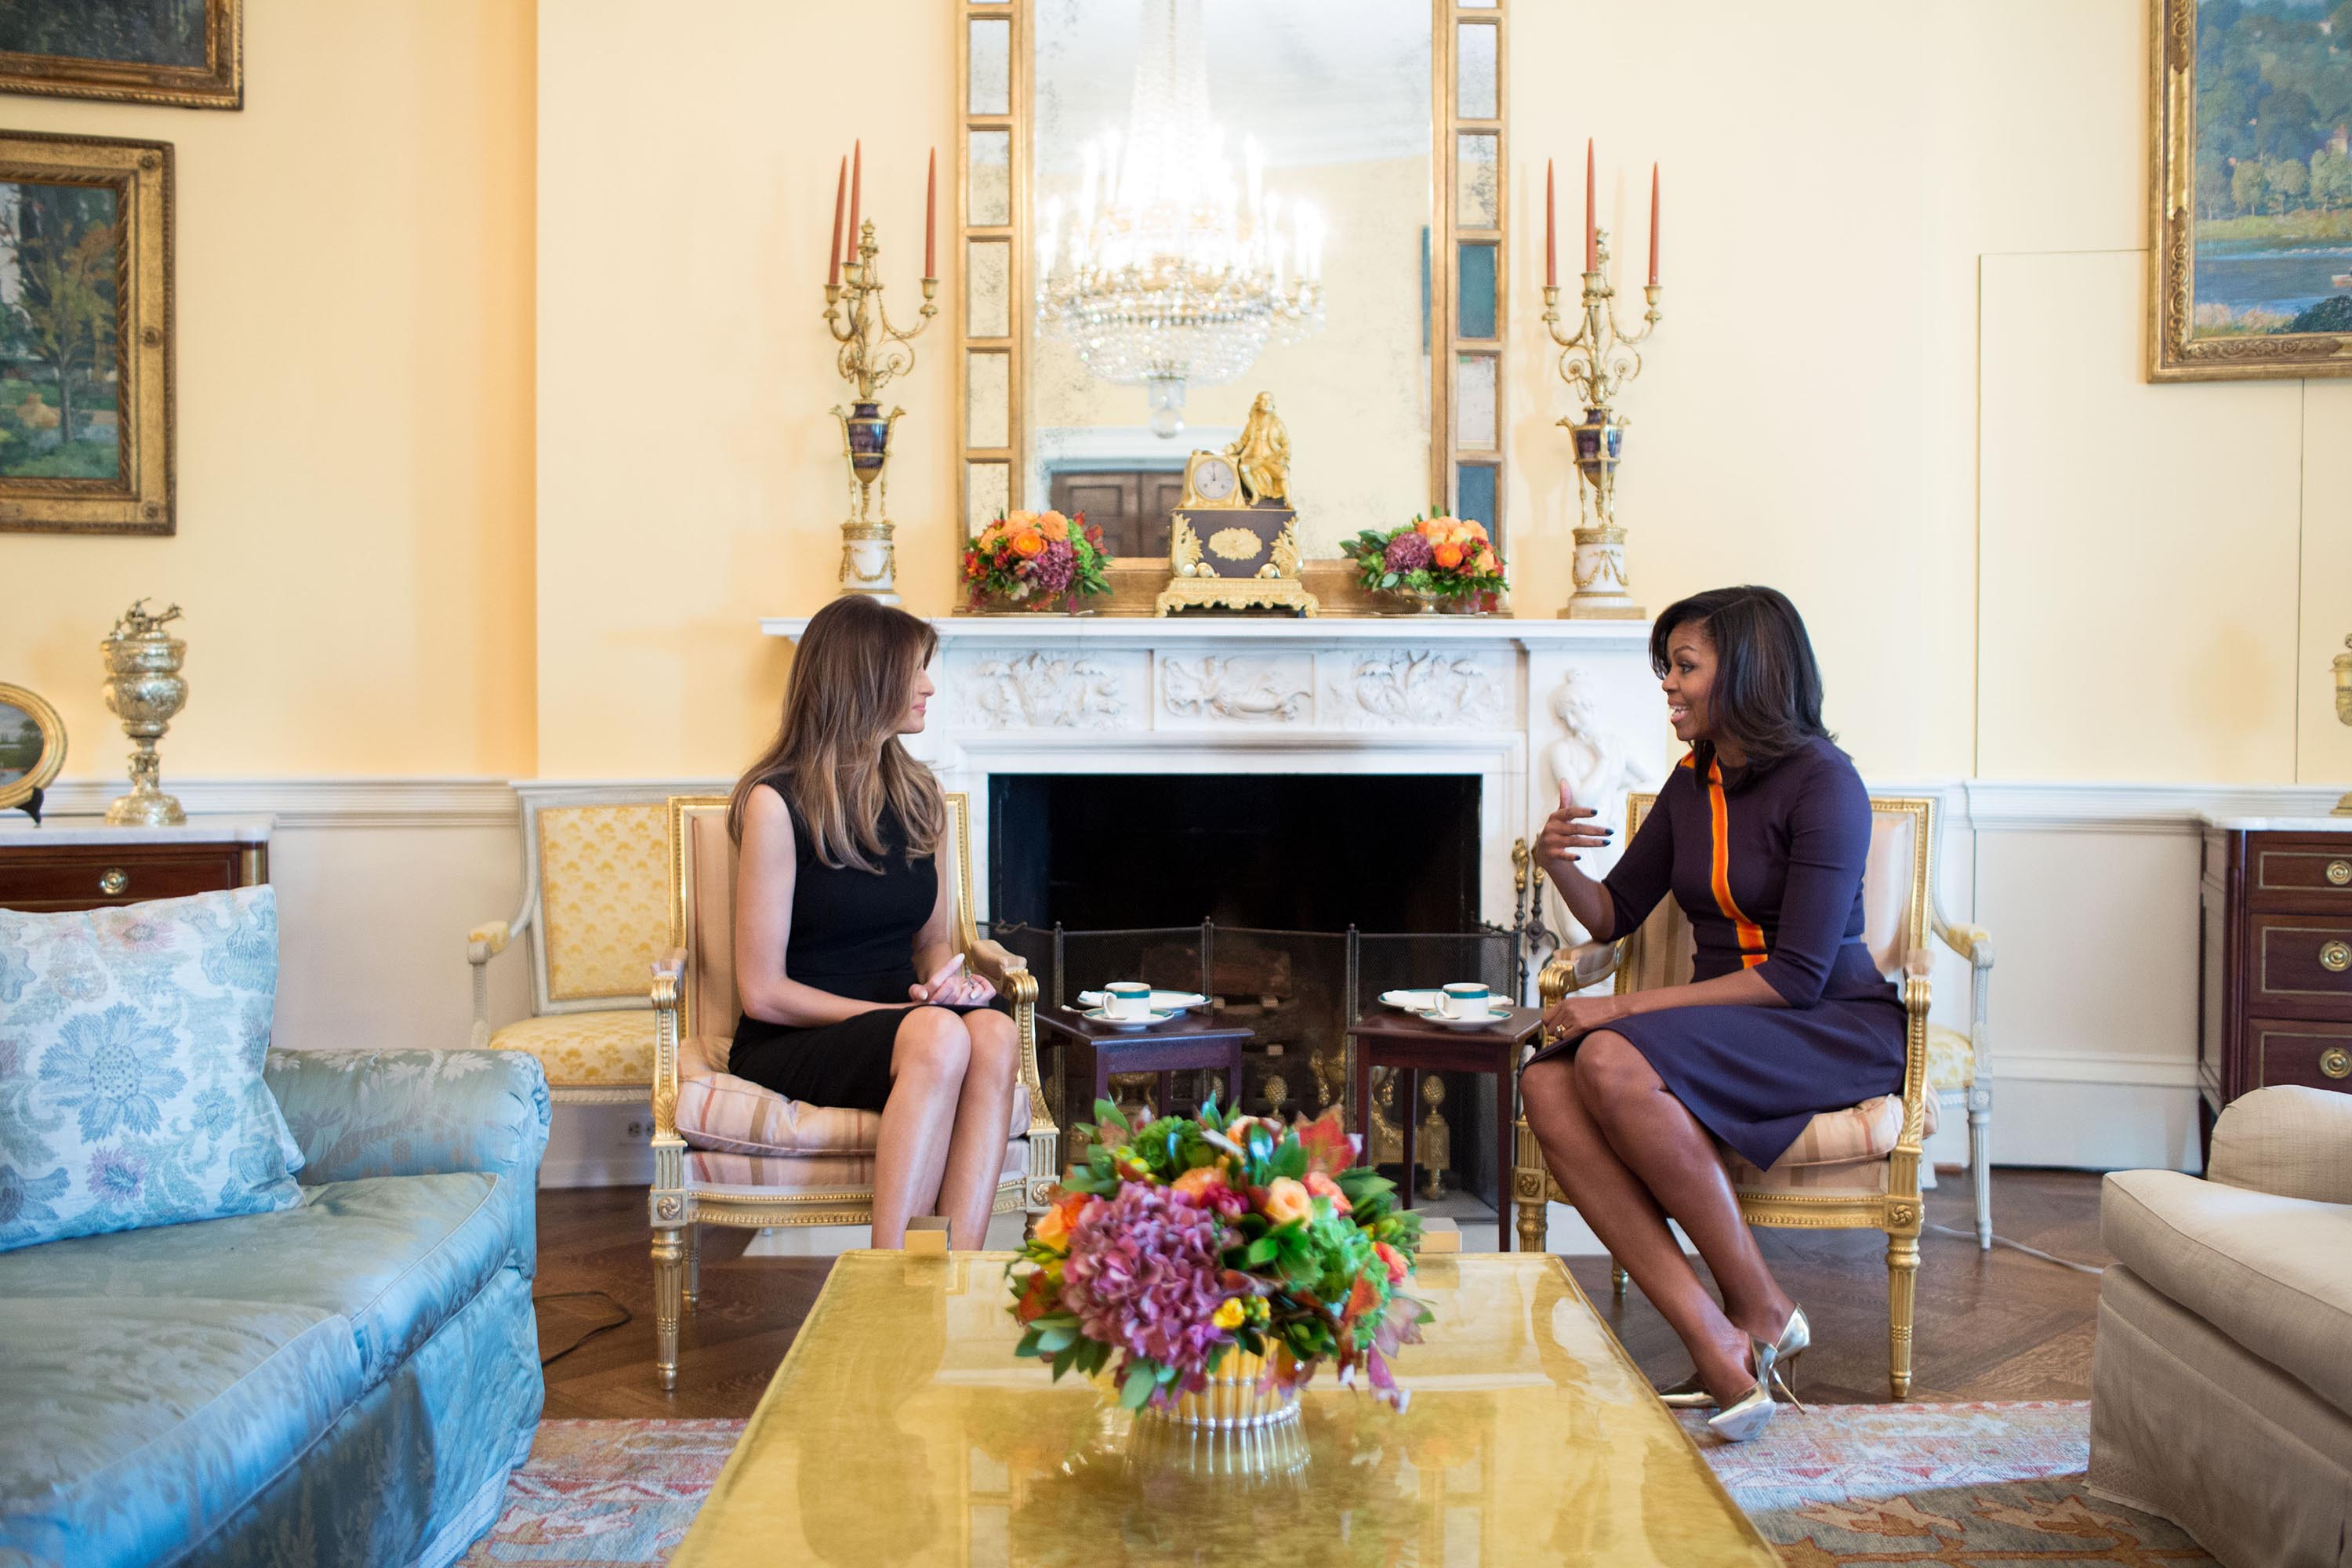 Michelle Obama meets with Melania Trump for tea in the Yellow Oval Room of the White House on November 10, 2016.